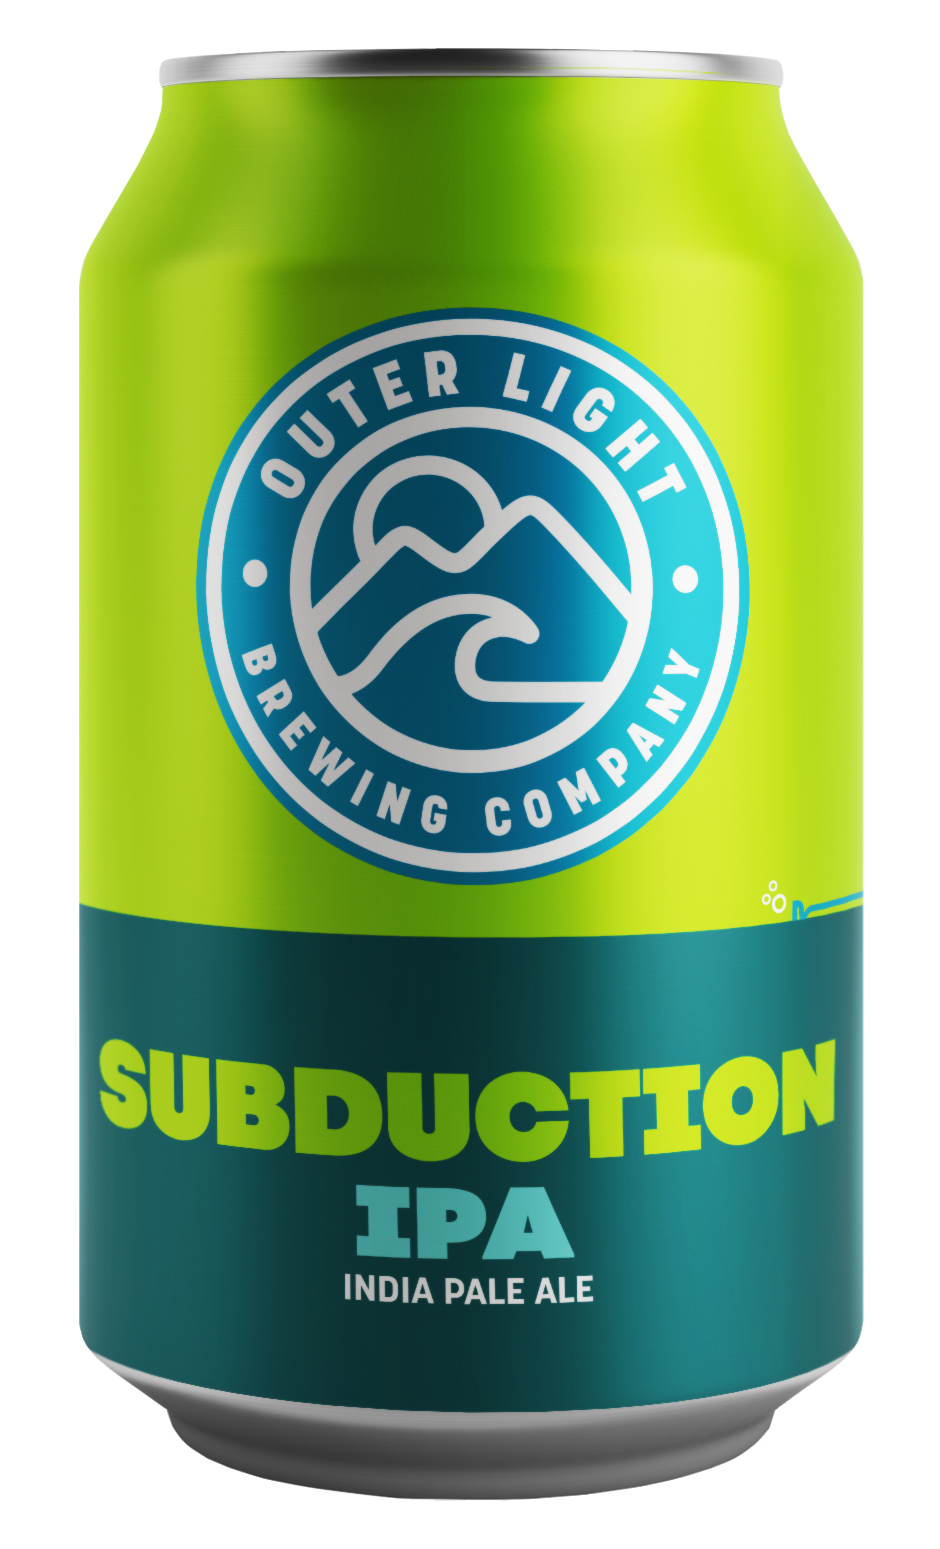 SUBduction™ IPA    A tribute to the submarine capital of the world, SUBduction feels like the home at the end of a long journey at sea.  Our heavenly IPA packs a celestial blend of big hop flavors, finishing with a light crisp freshness that begs for a return voyage. Launch your taste buds be pulled under with every sip. Embrace SUBduction. 6.8%, 80 IBU; Hops: El Dorado, Citra, Citra Lupulin Powder, Equinox; Malts: Pale, Munich, Caramel